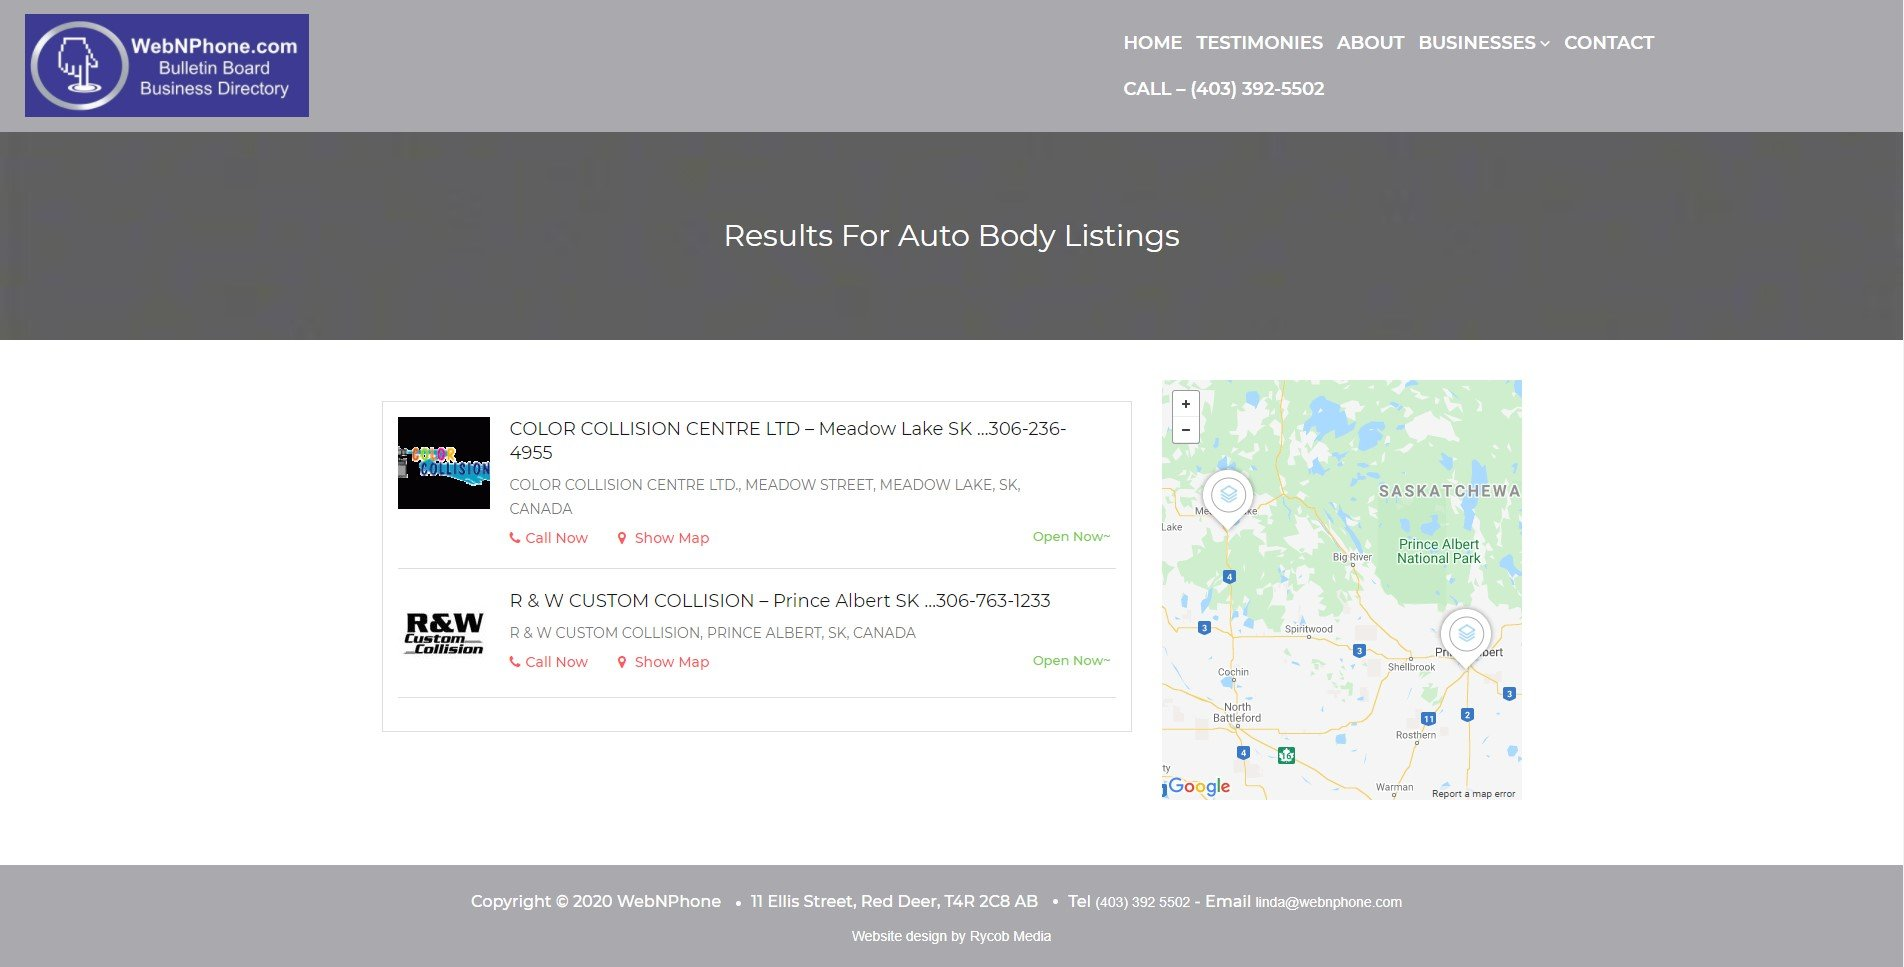 WebNPhone Directory Page